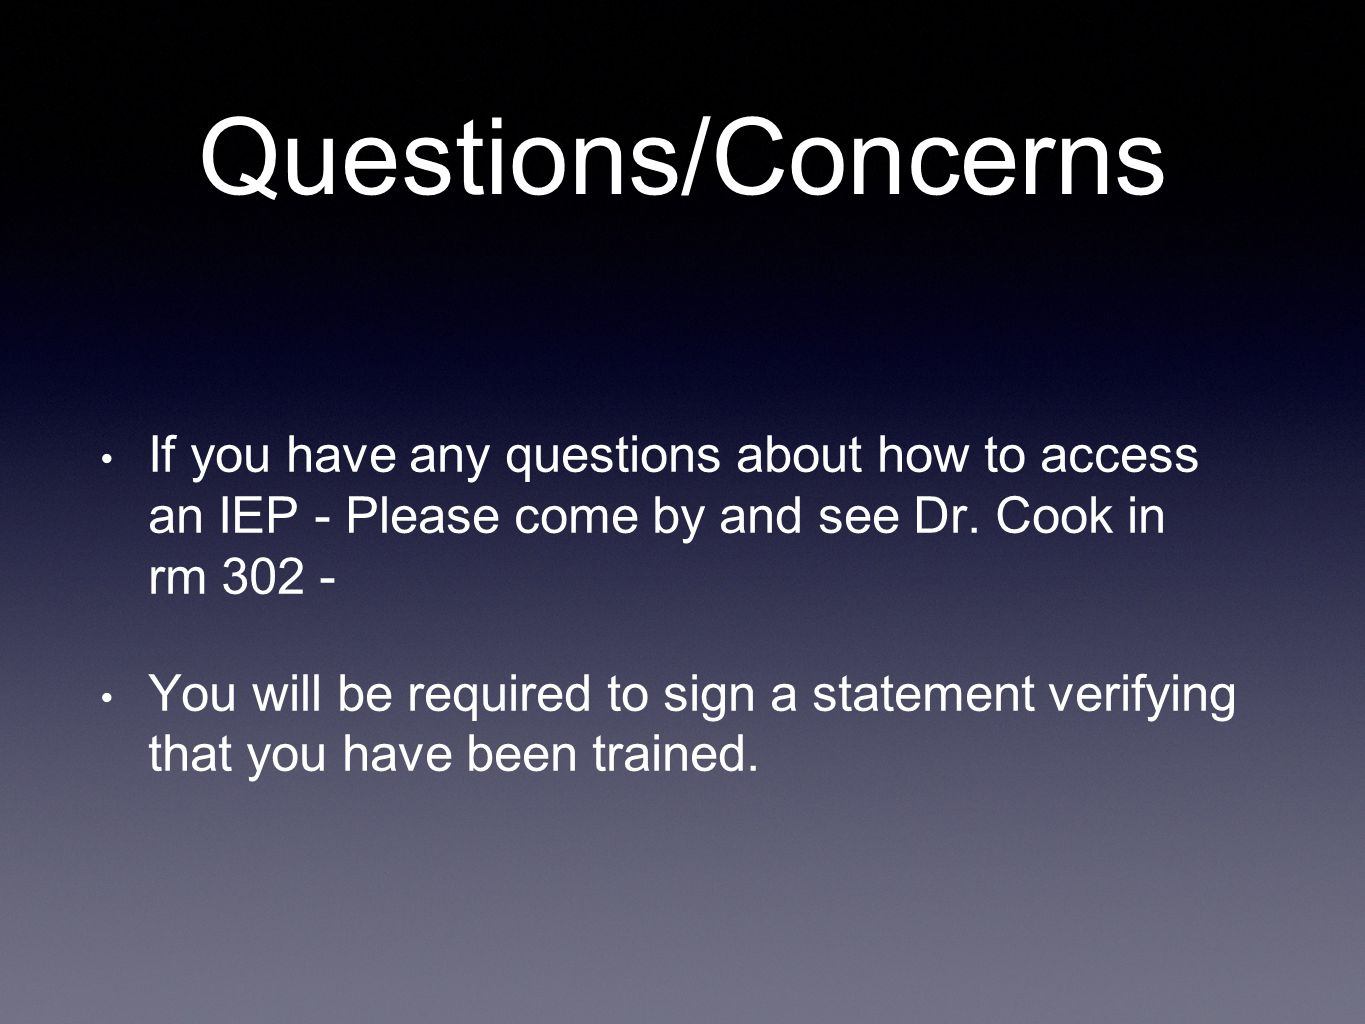 Questions/Concerns If you have any questions about how to access an IEP - Please come by and see Dr. Cook in rm 302 - You will be required to sign a s